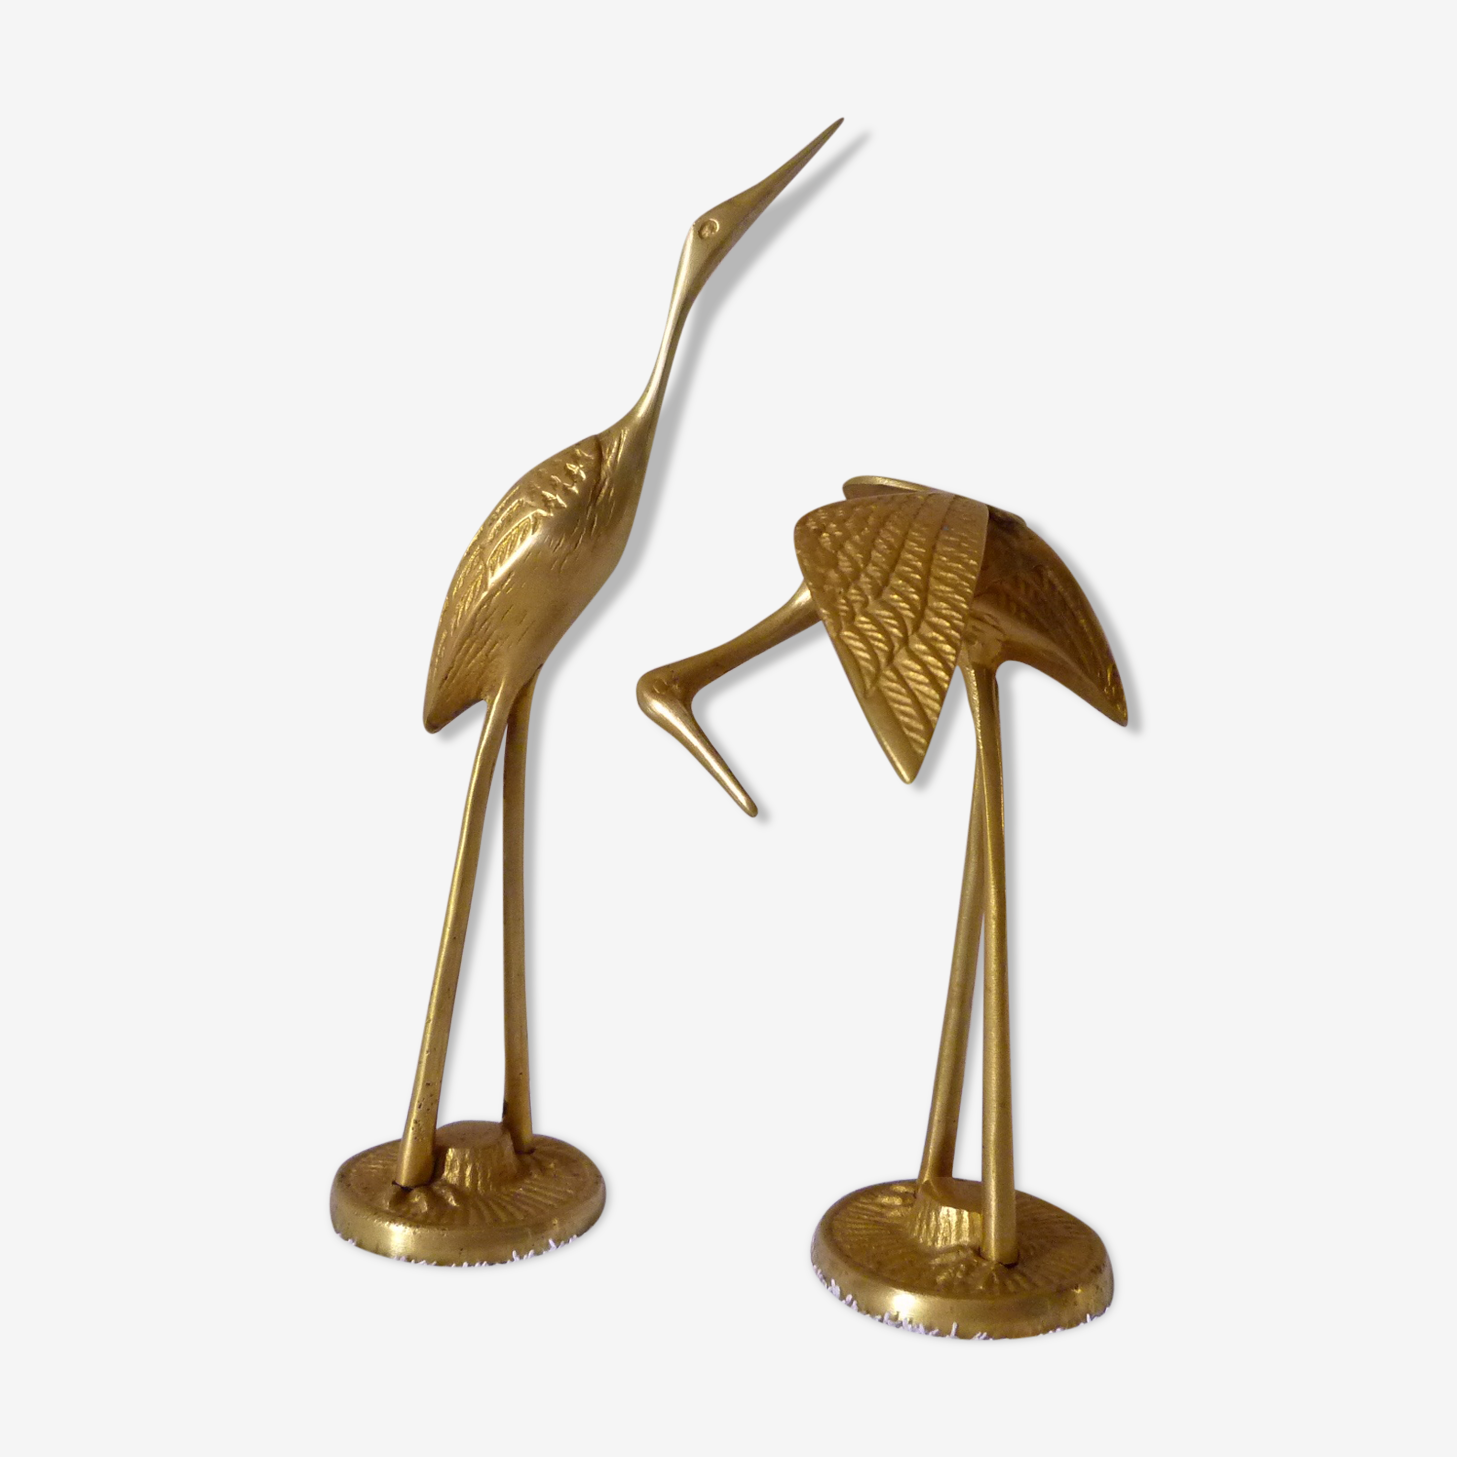 Couple of waders in brass